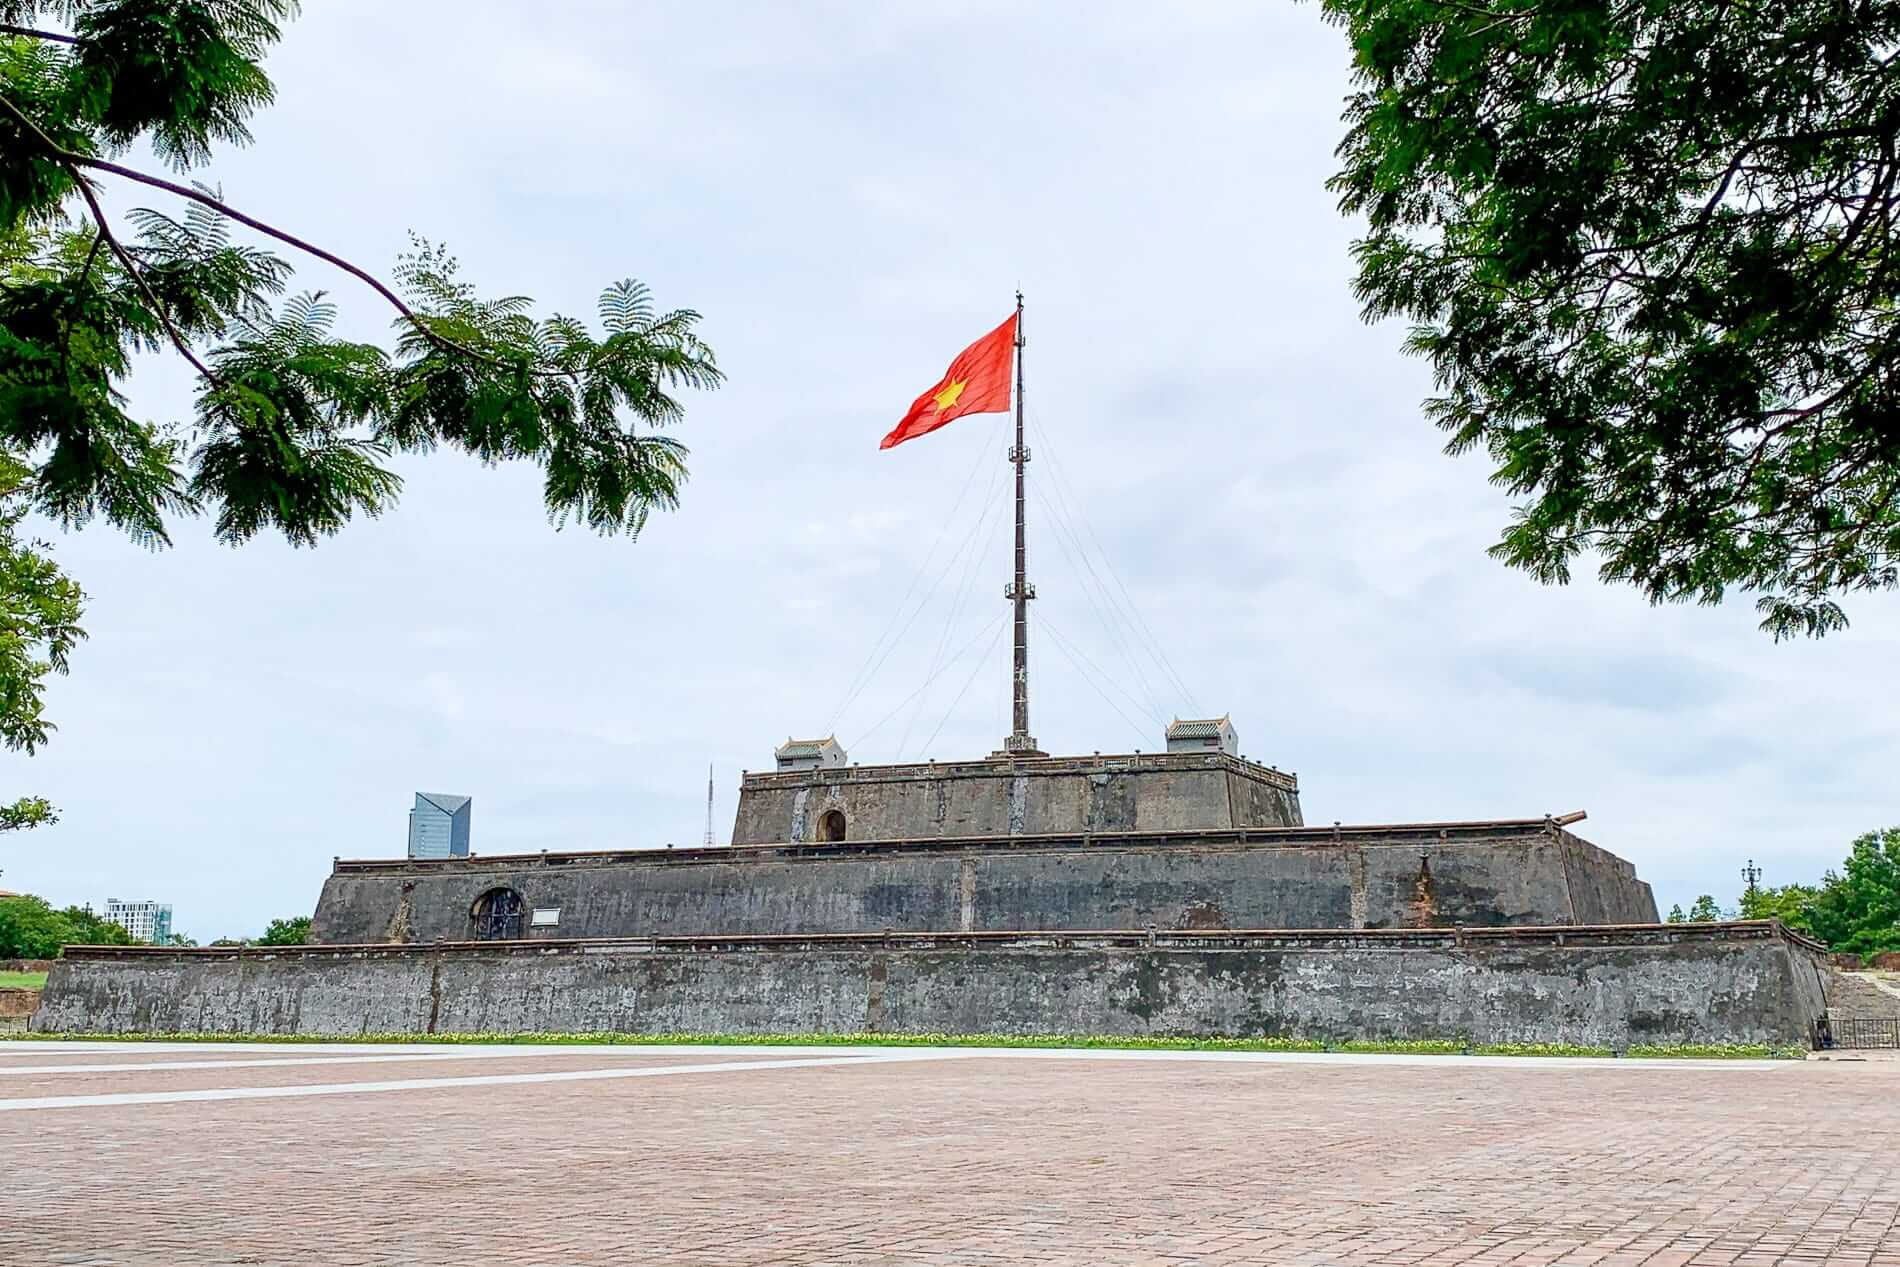 A Vietnamese flag flies over Hue Citadel